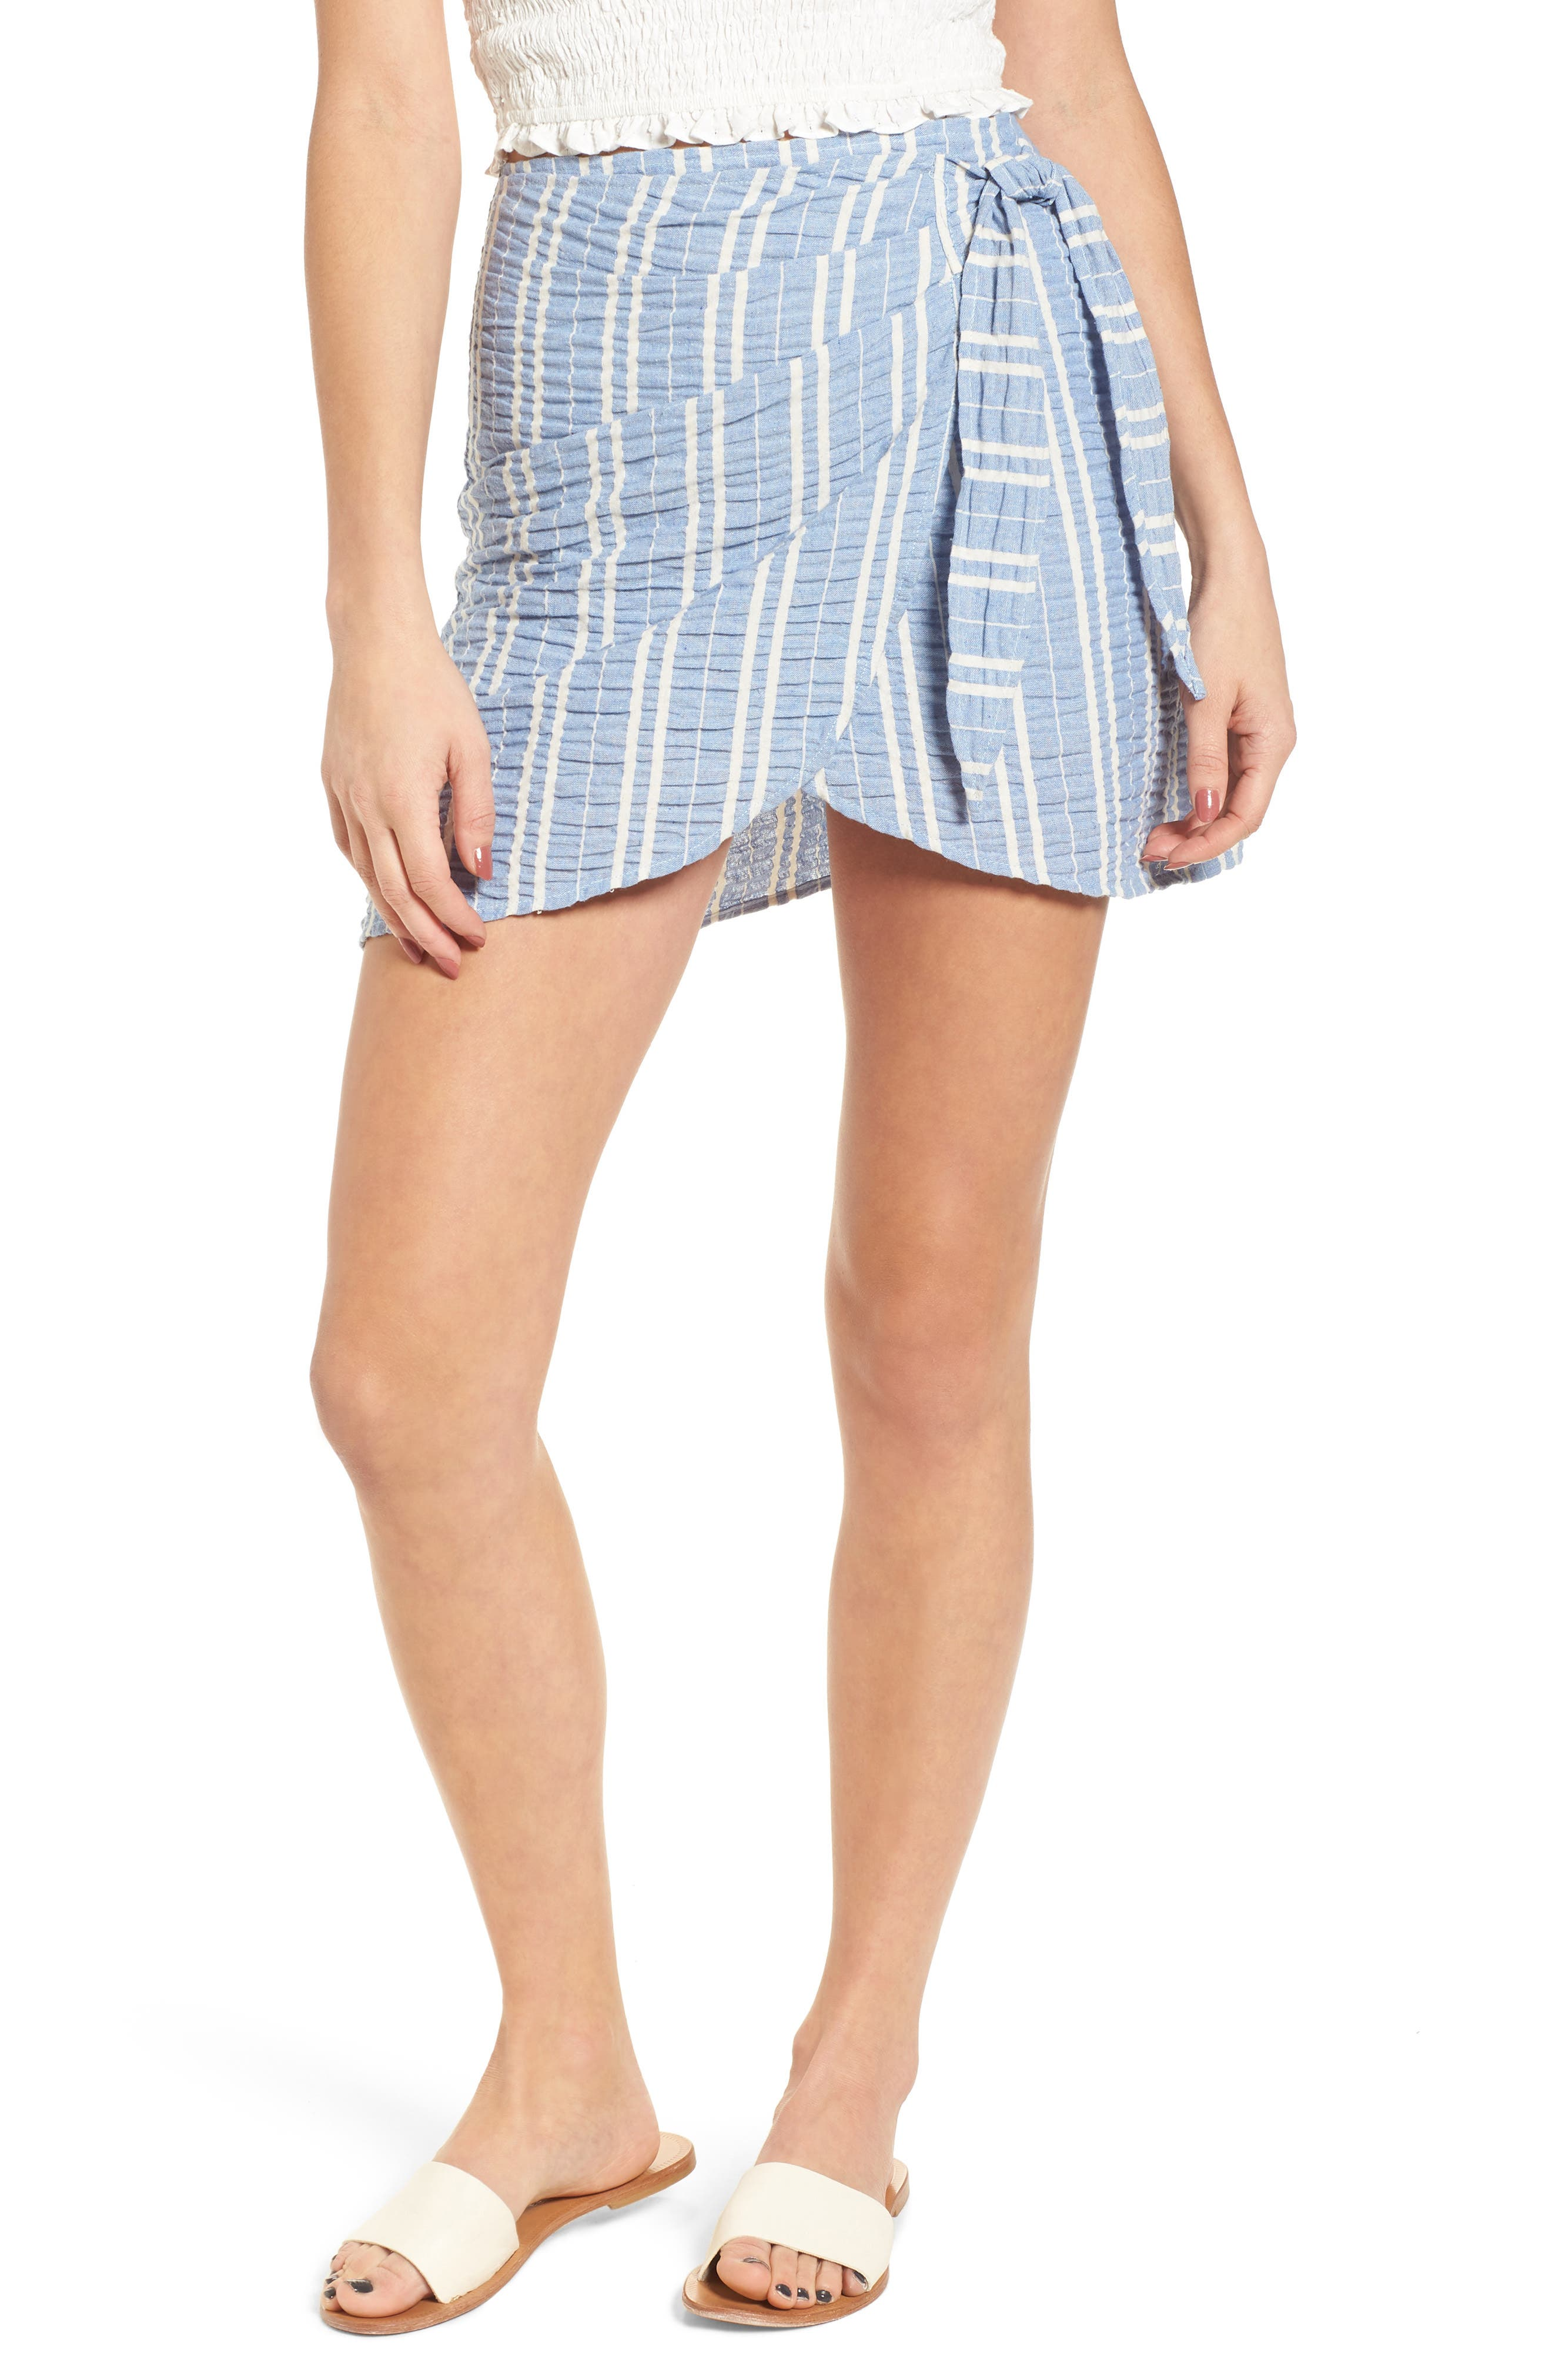 LOST + WANDER Waves Wrap Front Skirt, Main, color, 466